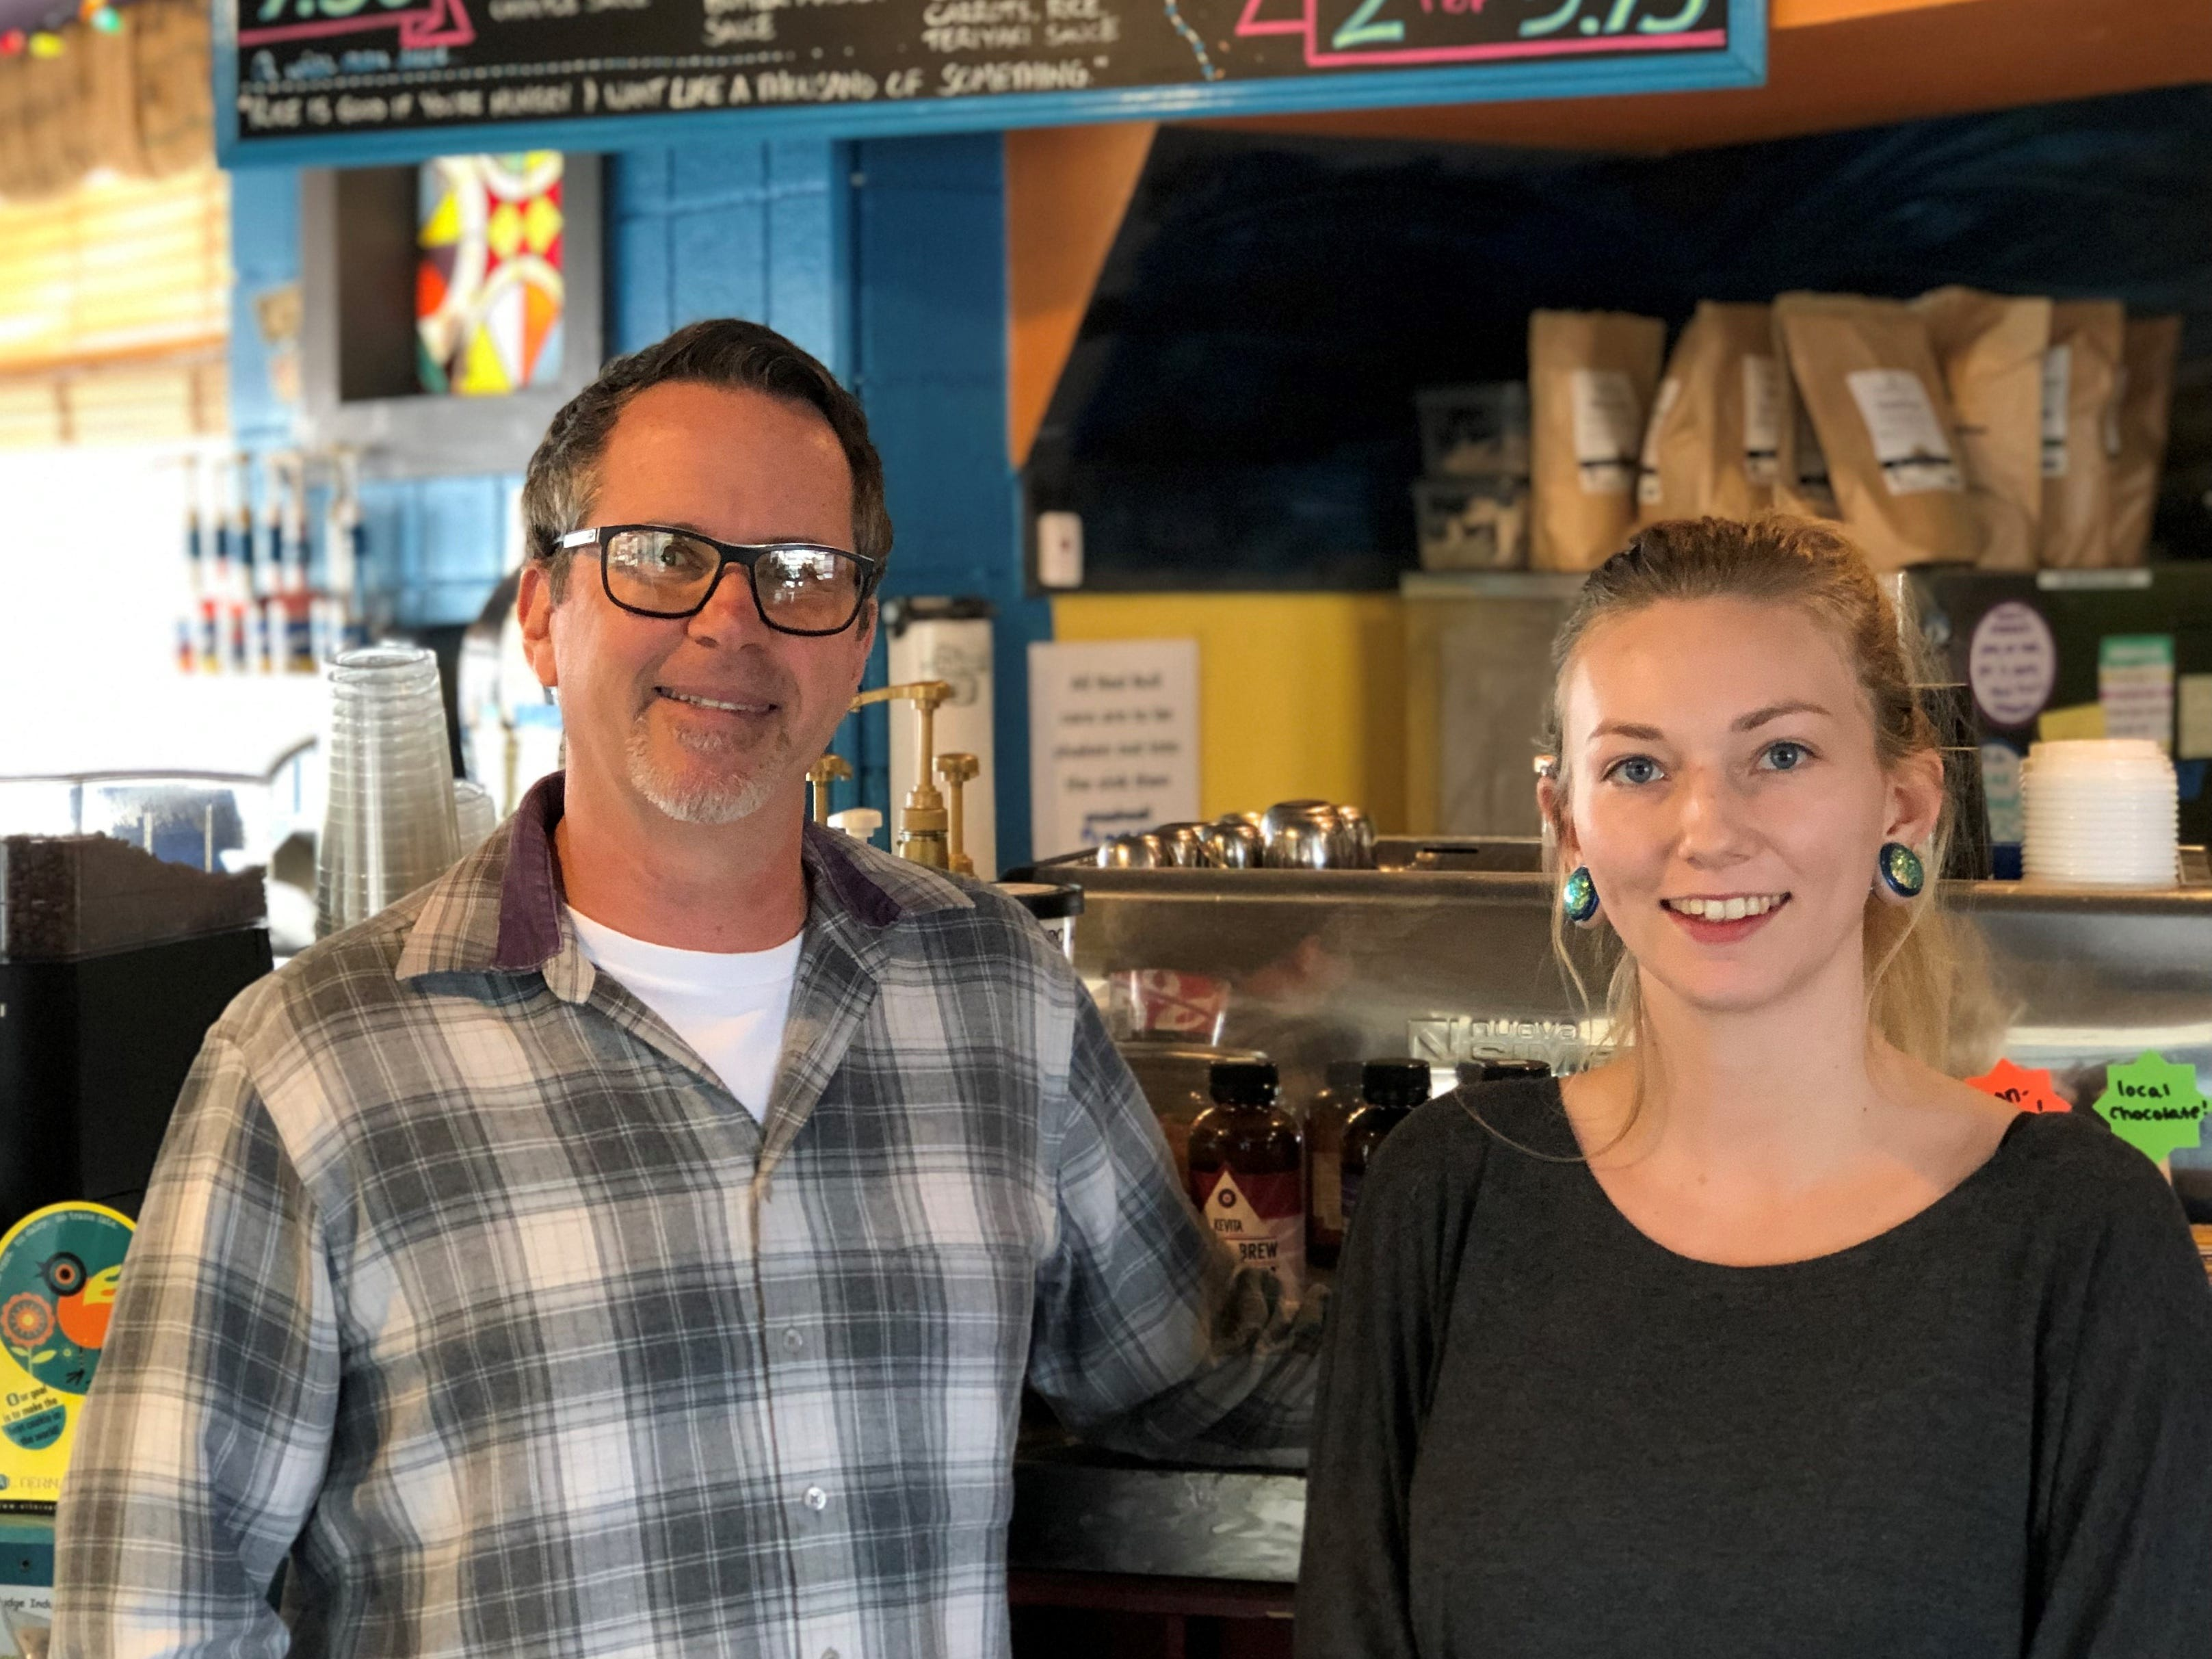 Managers Al Mires and Angelica Spade at Kaleidoscope Coffee's Athens Avenue cafe and restaurant in Redding.